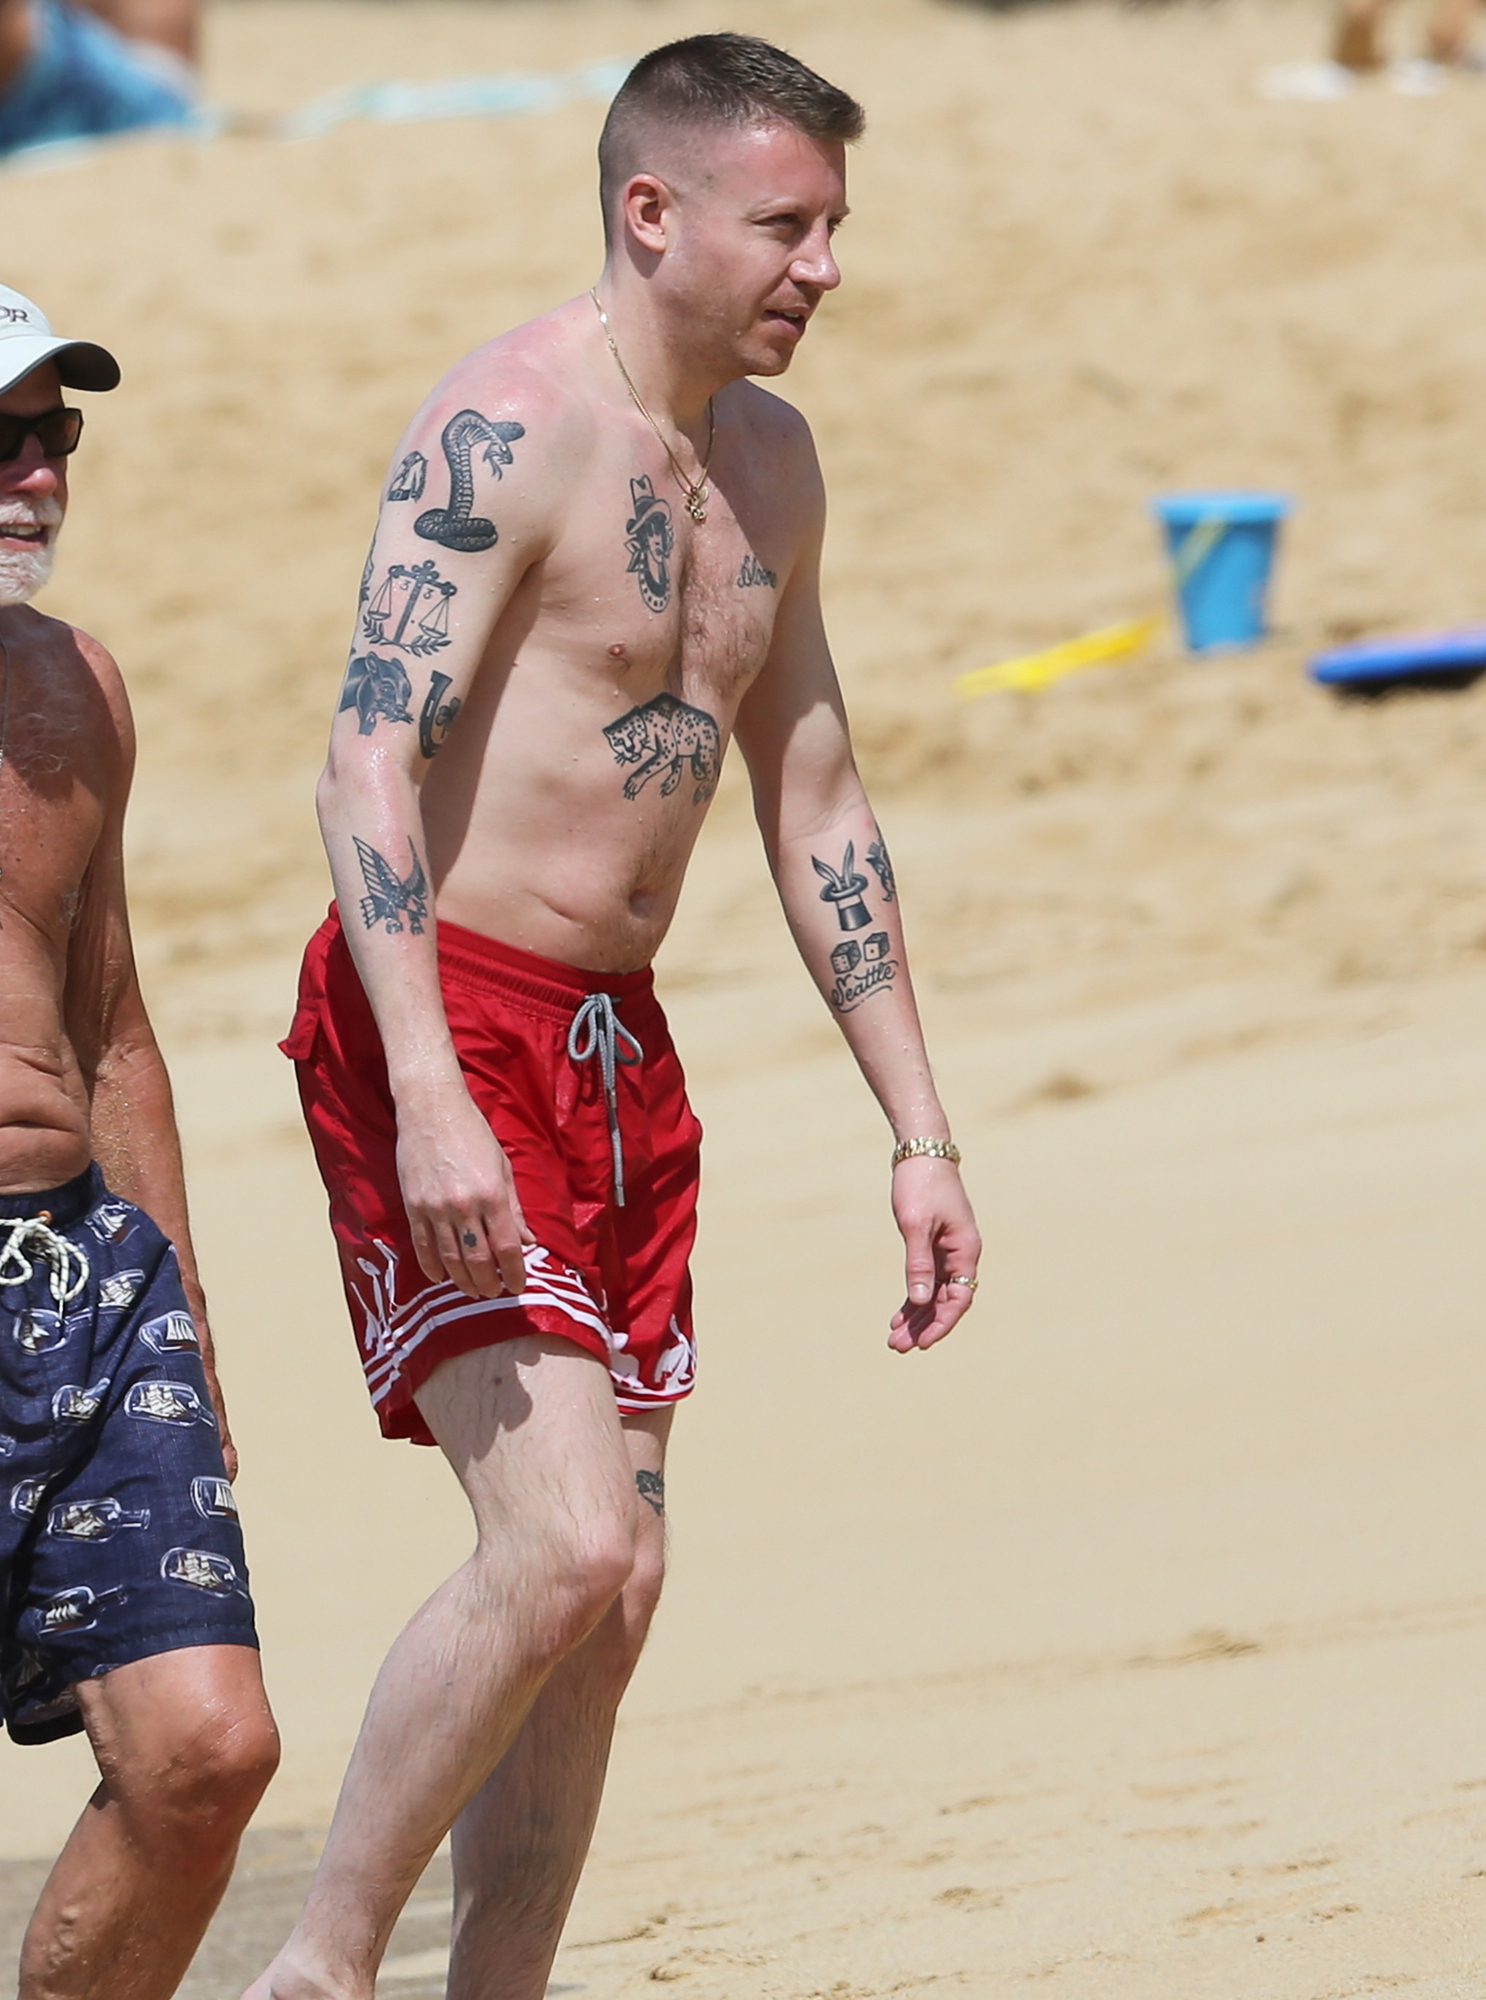 EXCLUSIVE: A shirtless Macklemore enjoys a beautiful day at the beach in Hawaii.